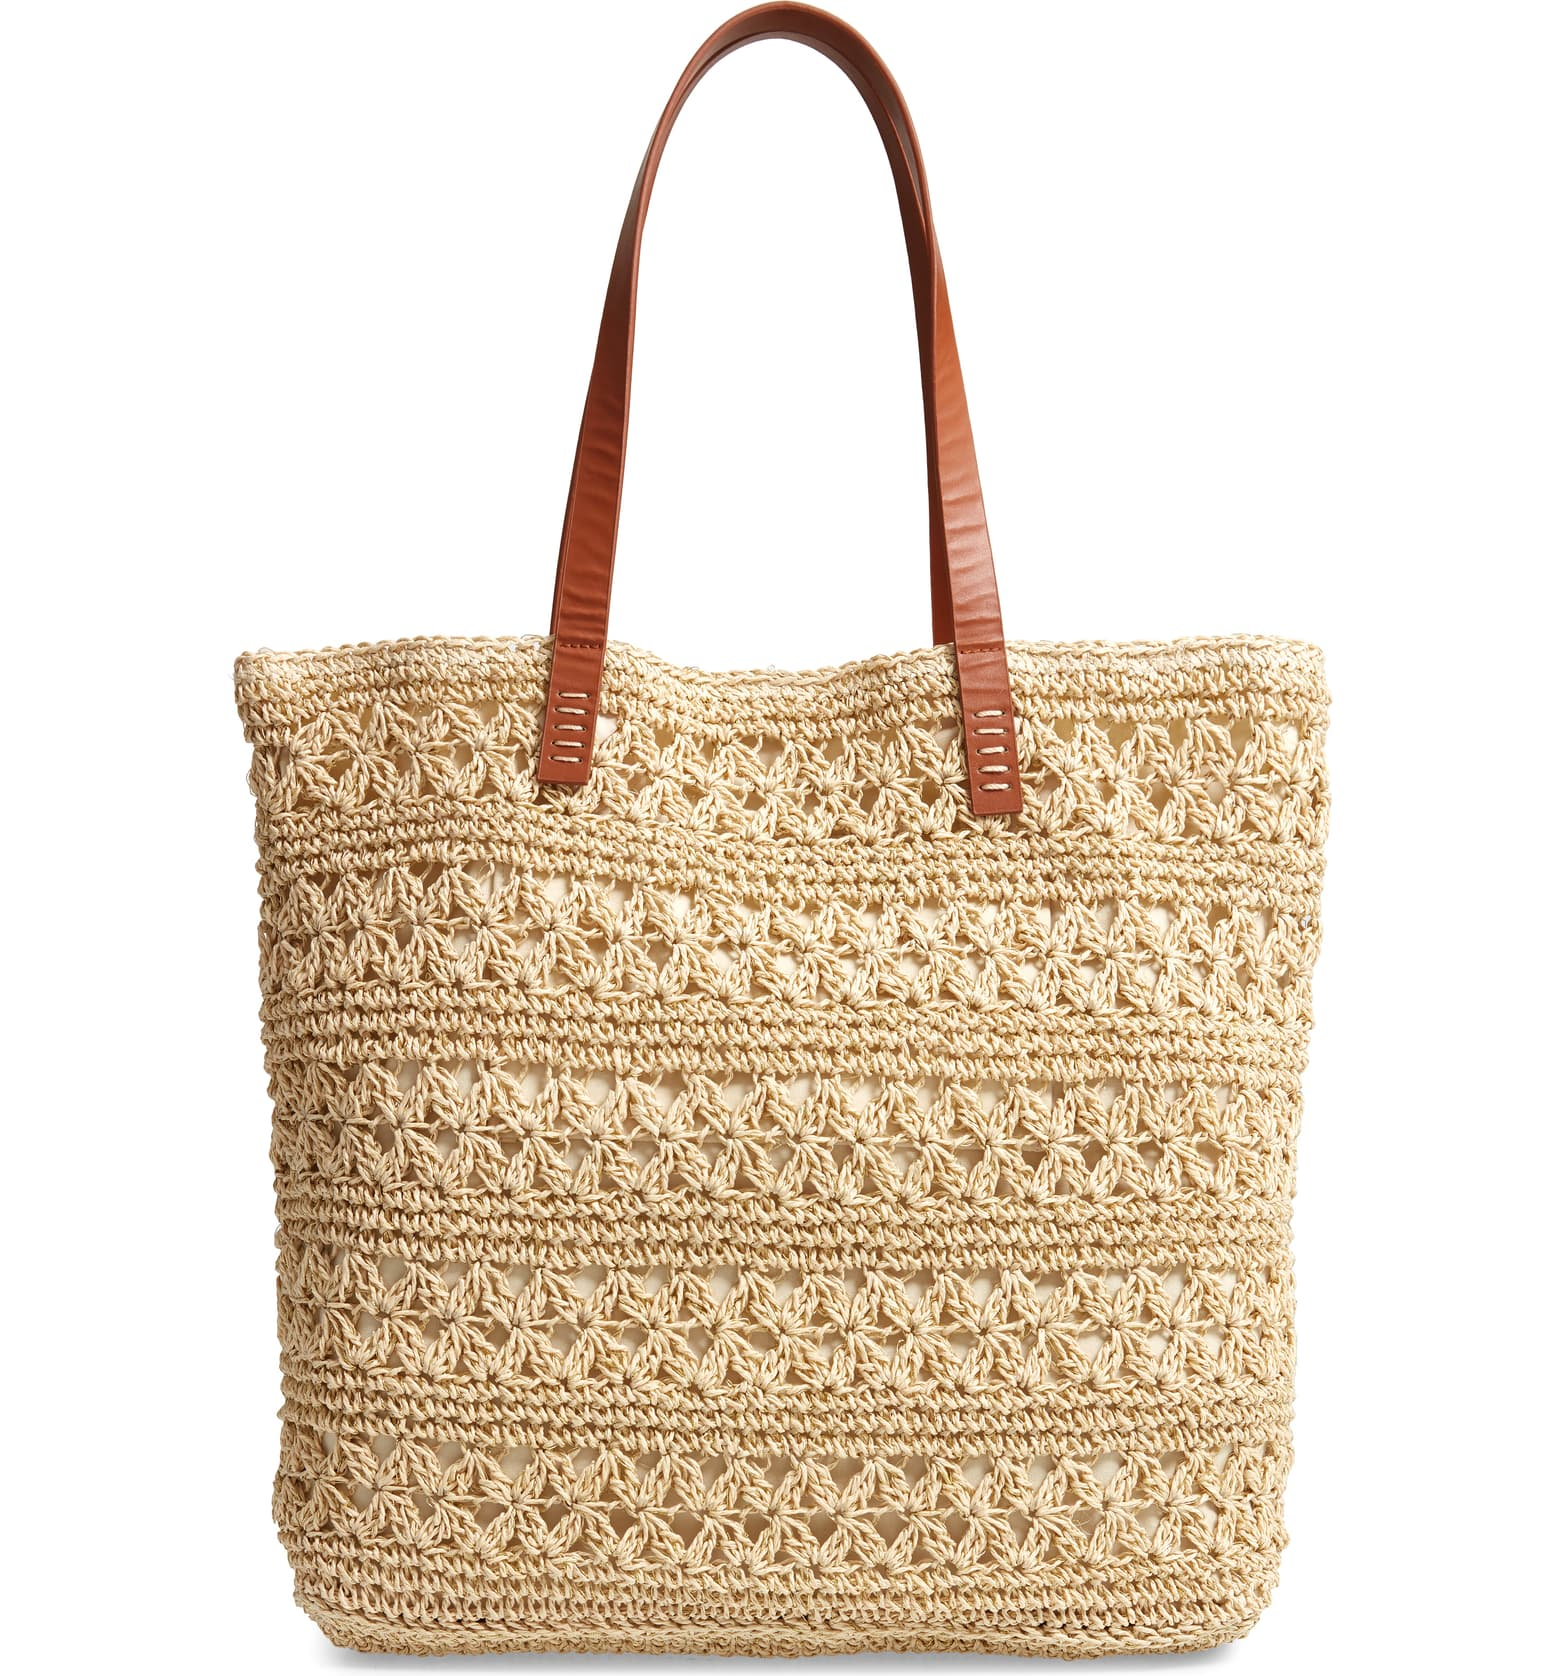 A roomy woven-raffia tote with easy over-the-shoulder handles serves as a breezy everyday essential - or a perfect, STYLISH beach bag!